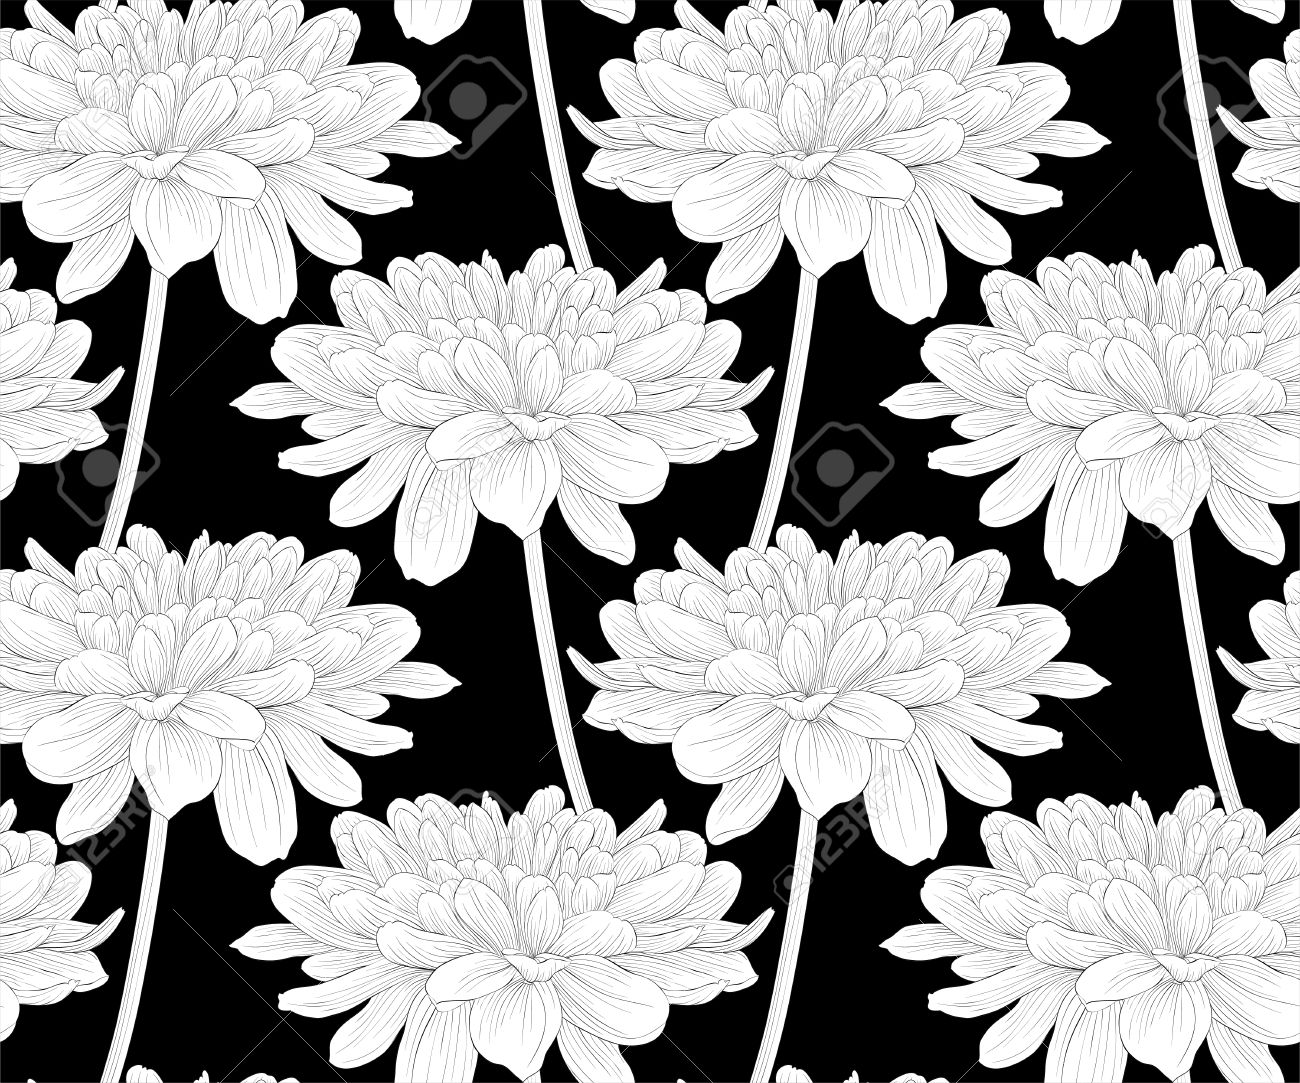 Black Line Flower Drawing : Black line drawing rose toile on off white die cut flower